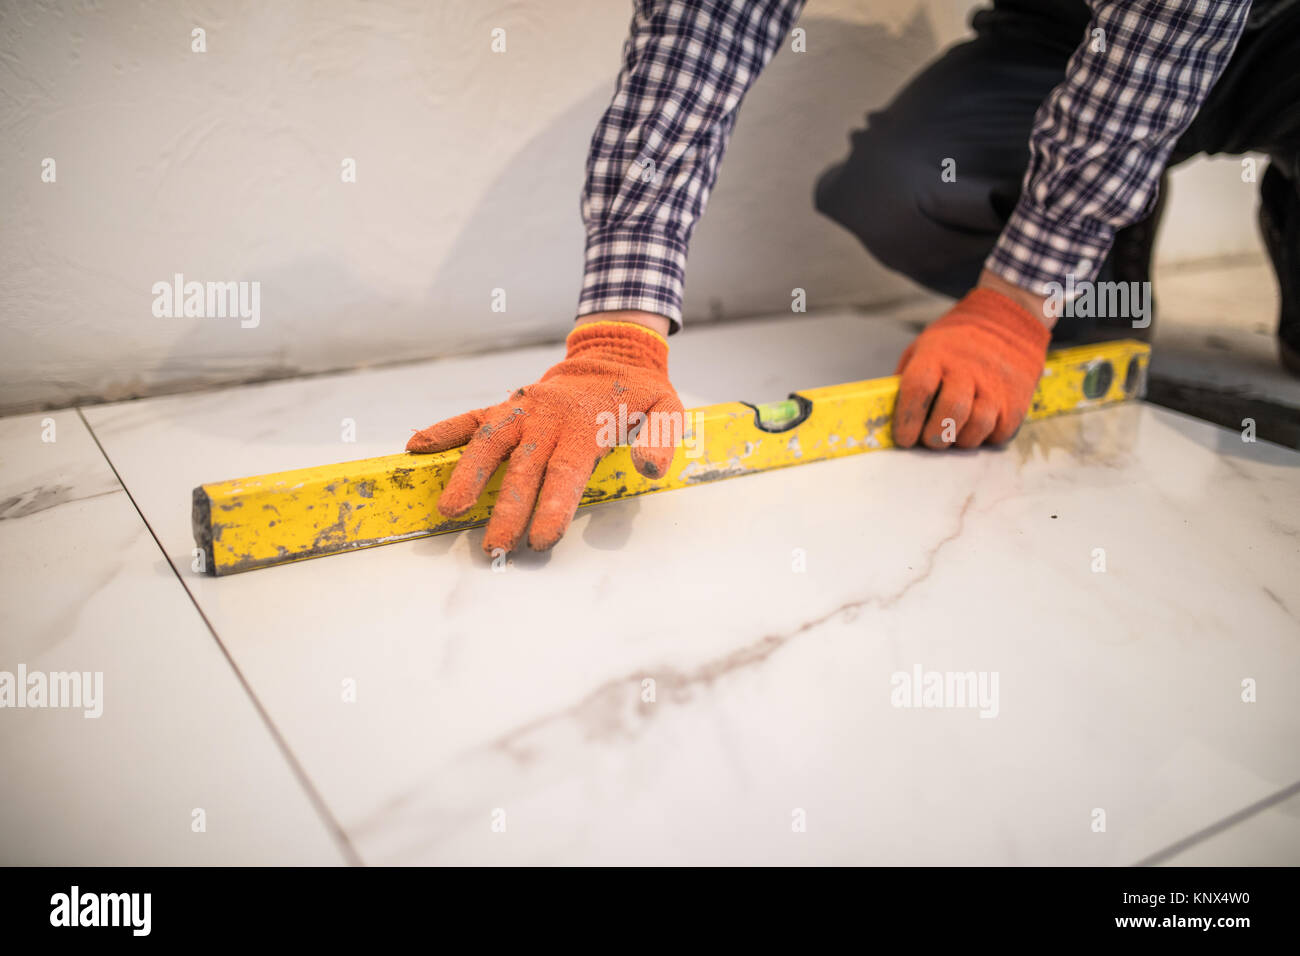 Renovation professional tile improvement handyman stock photos home tile improvement handyman with level laying down tile floor stock image dailygadgetfo Choice Image